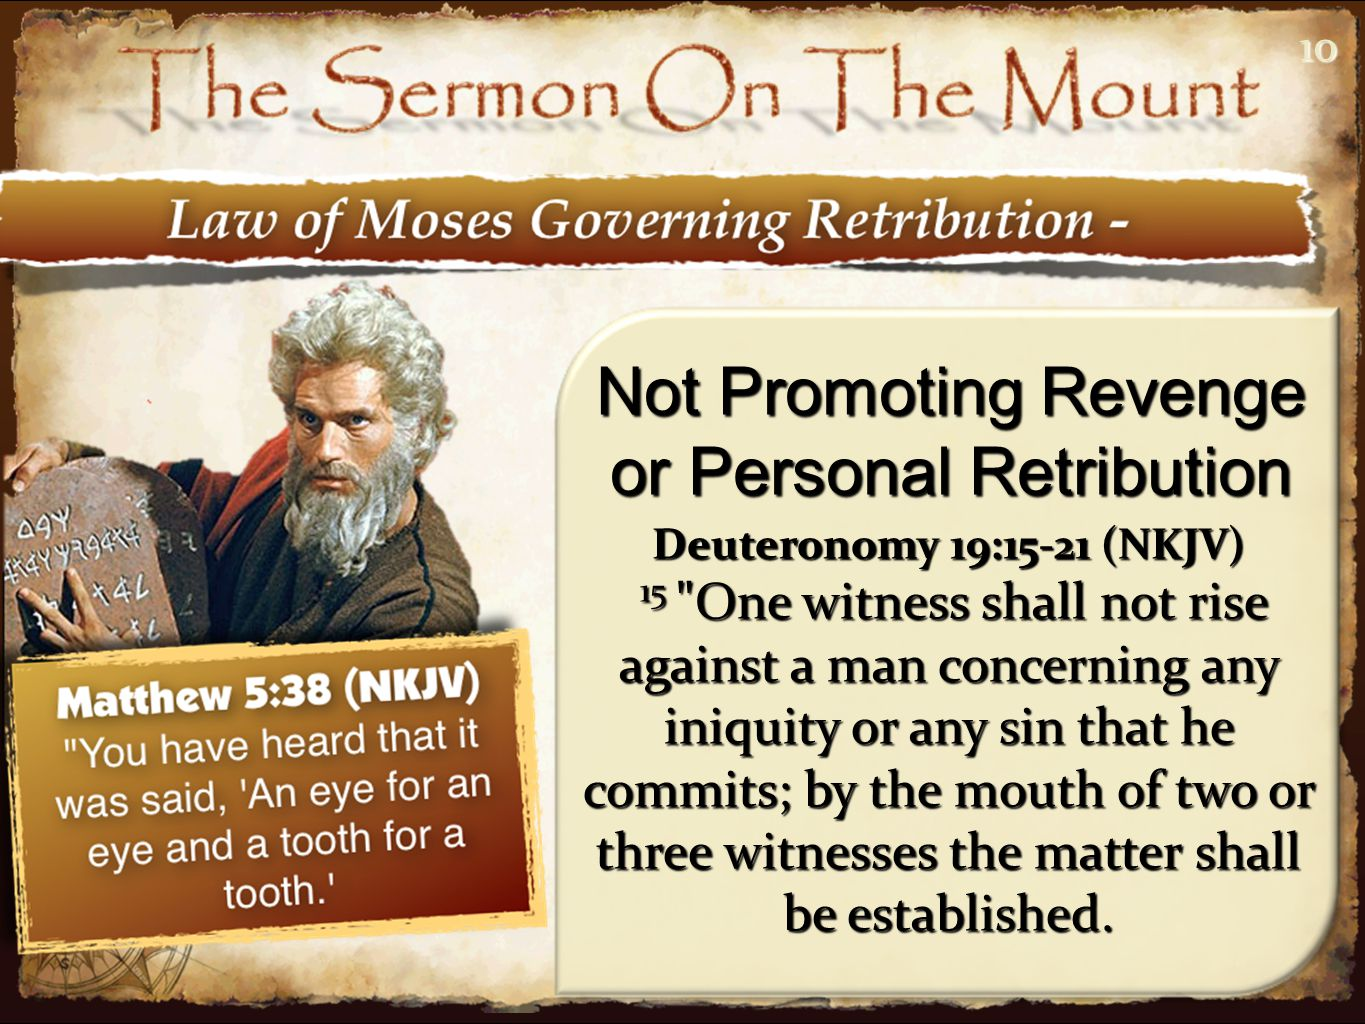 1010 Not Promoting Revenge or Personal Retribution Deuteronomy 19:15-21 (NKJV) 15 One witness shall not rise against a man concerning any iniquity or any sin that he commits; by the mouth of two or three witnesses the matter shall be established.